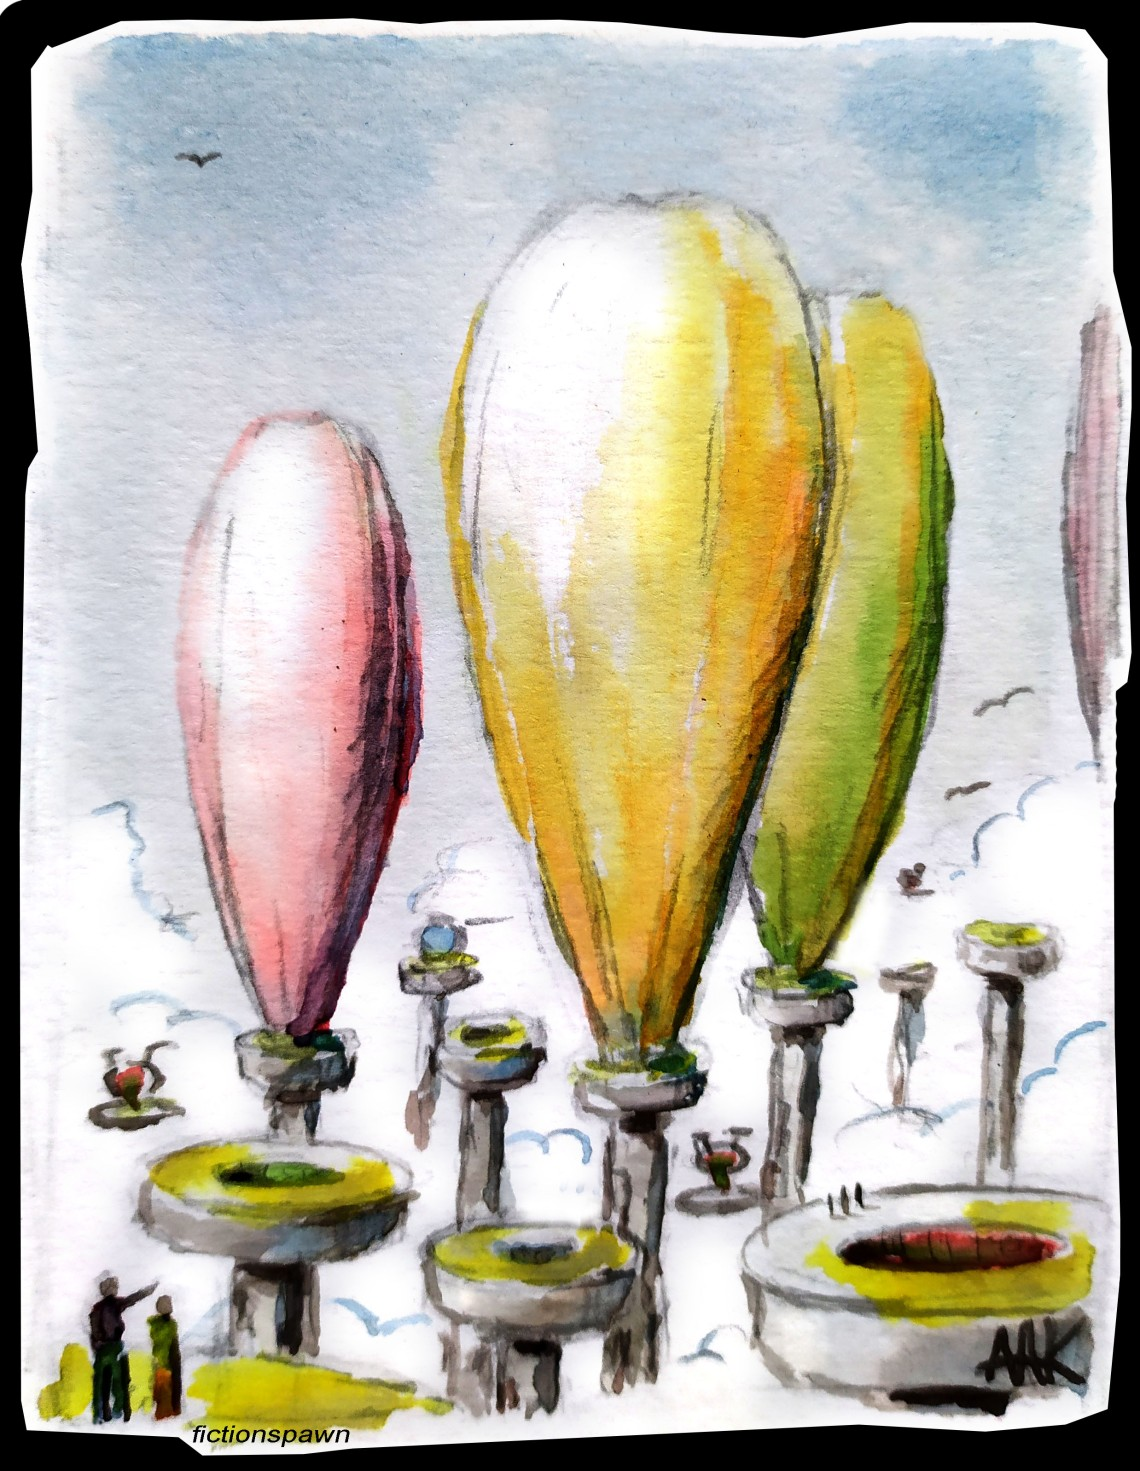 Field of baloons. fictionspawn Aak